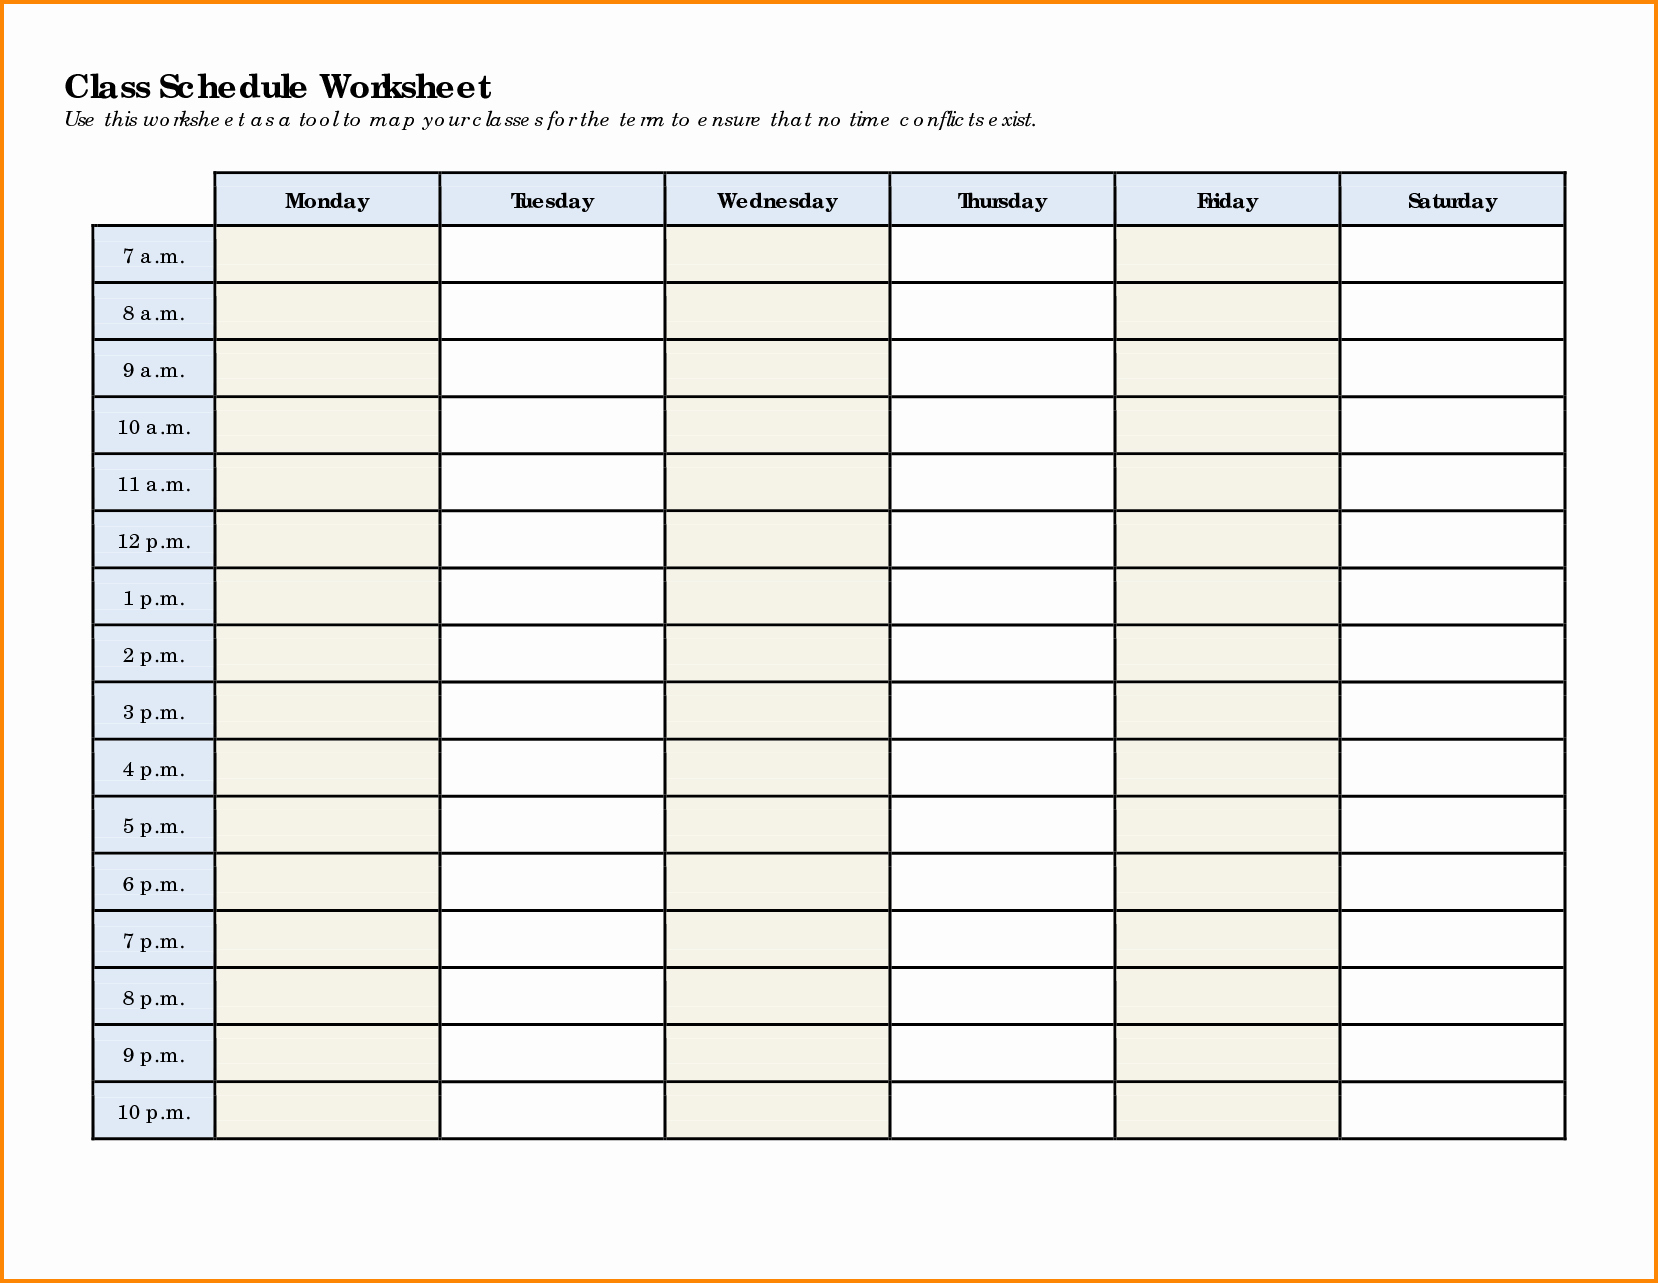 Weekly Class Schedule Template New 7 Weekly Class Schedule Template